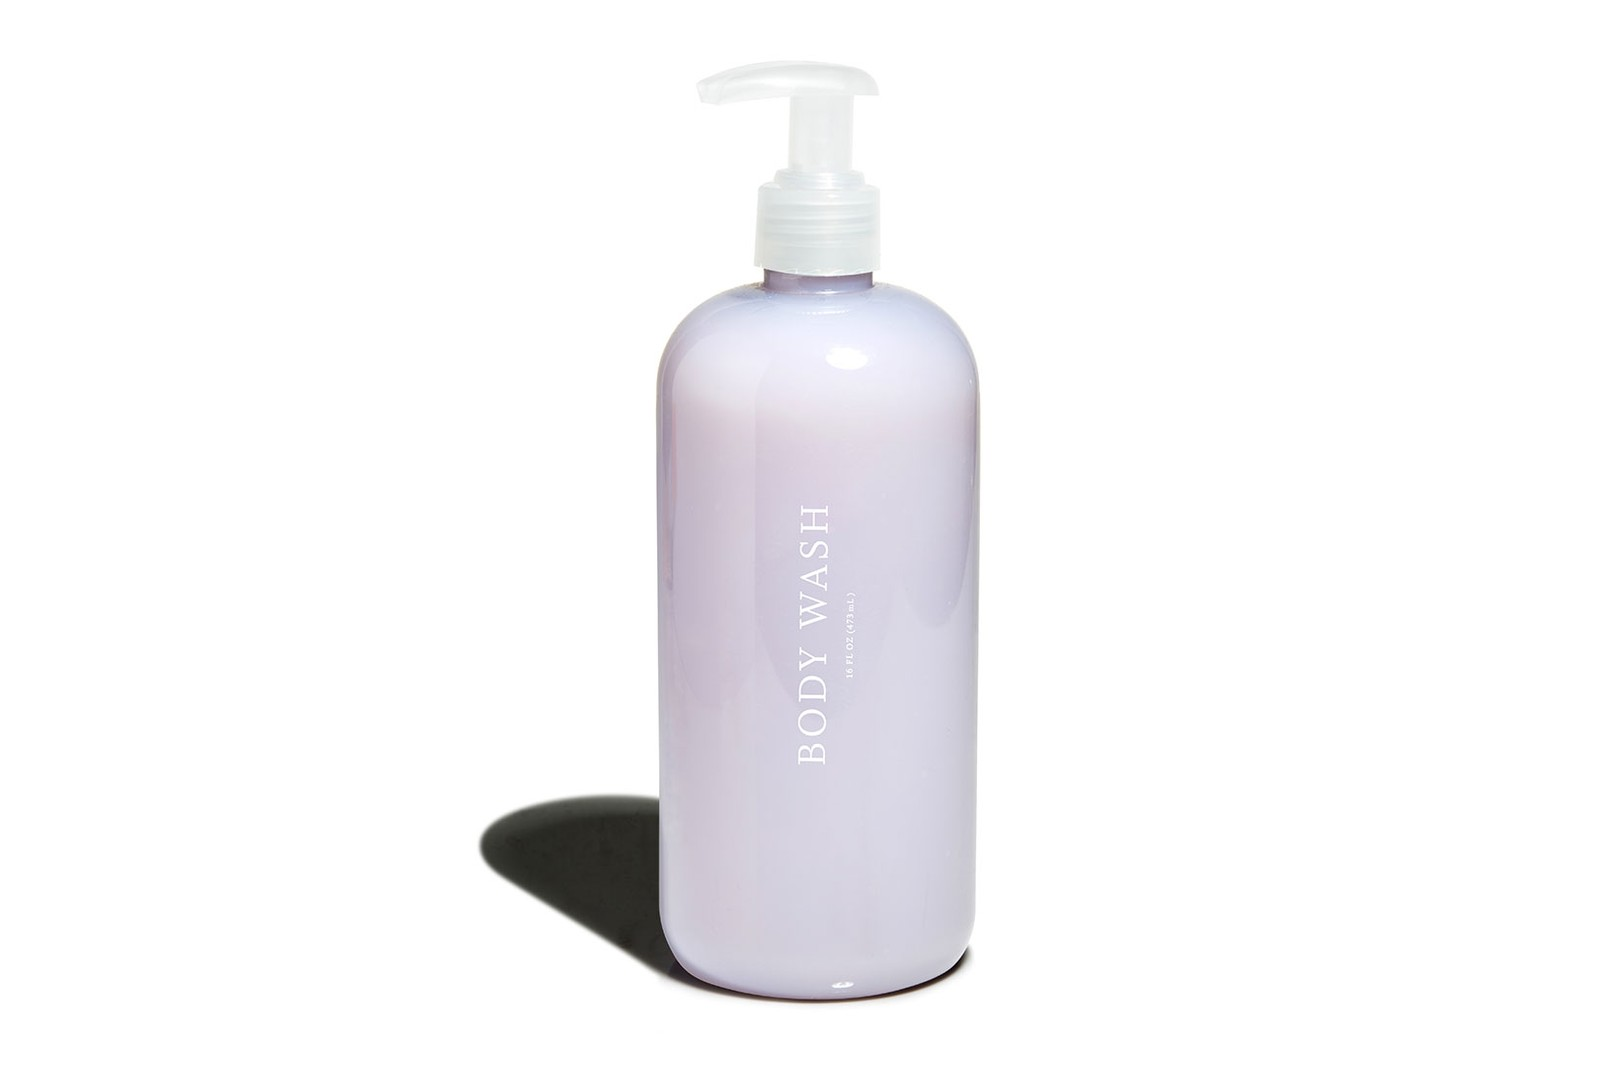 function of beauty customizable body care launch wash lotion personalized skincare